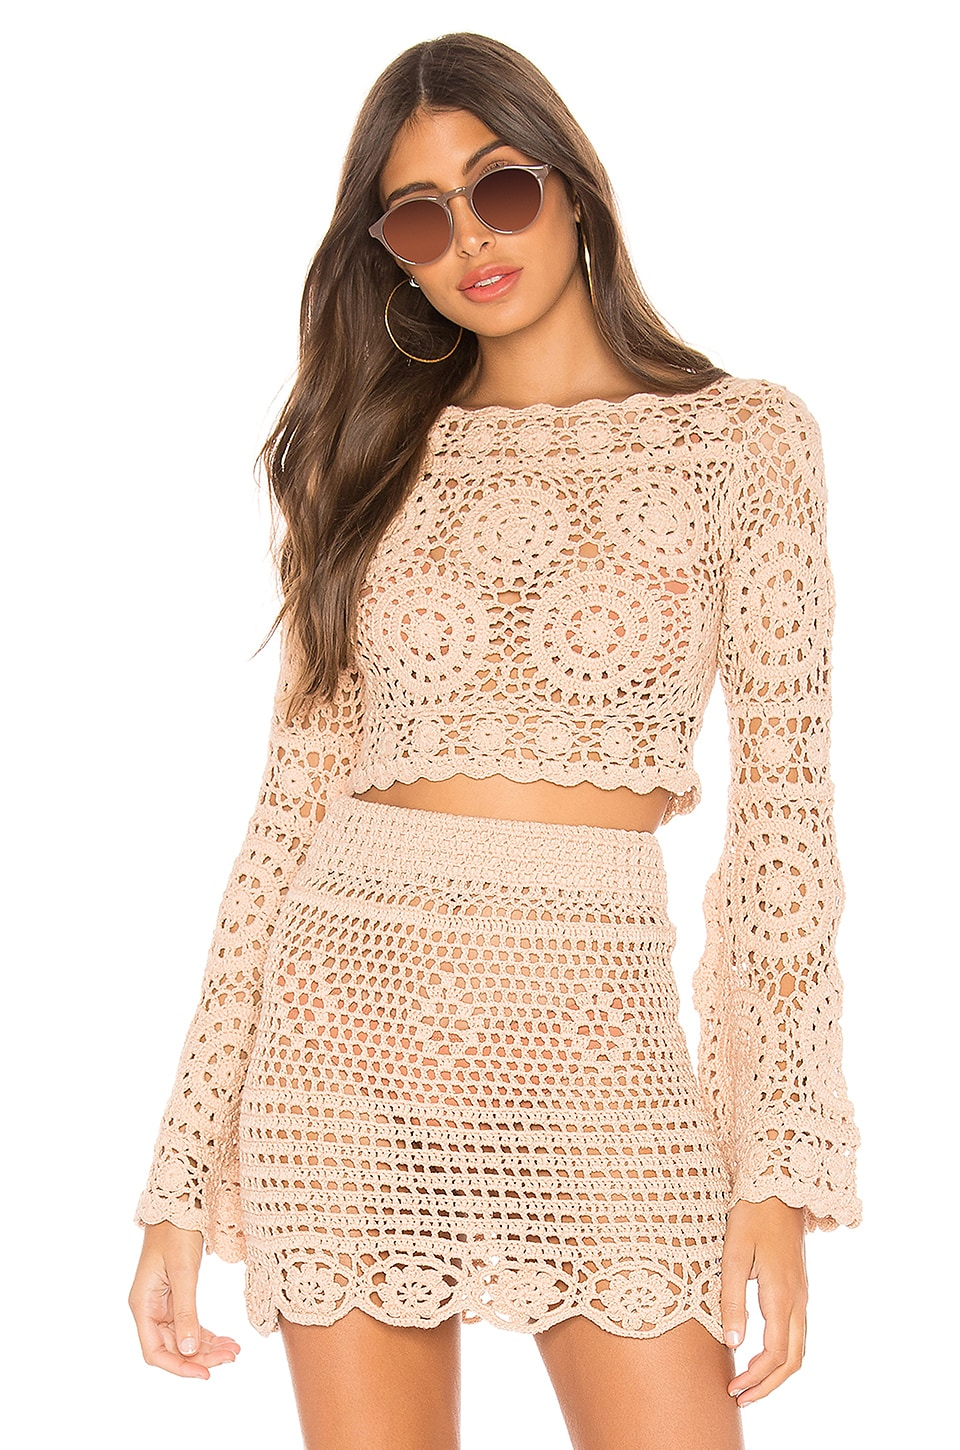 MAJORELLE Harvest Crop Top in Sand